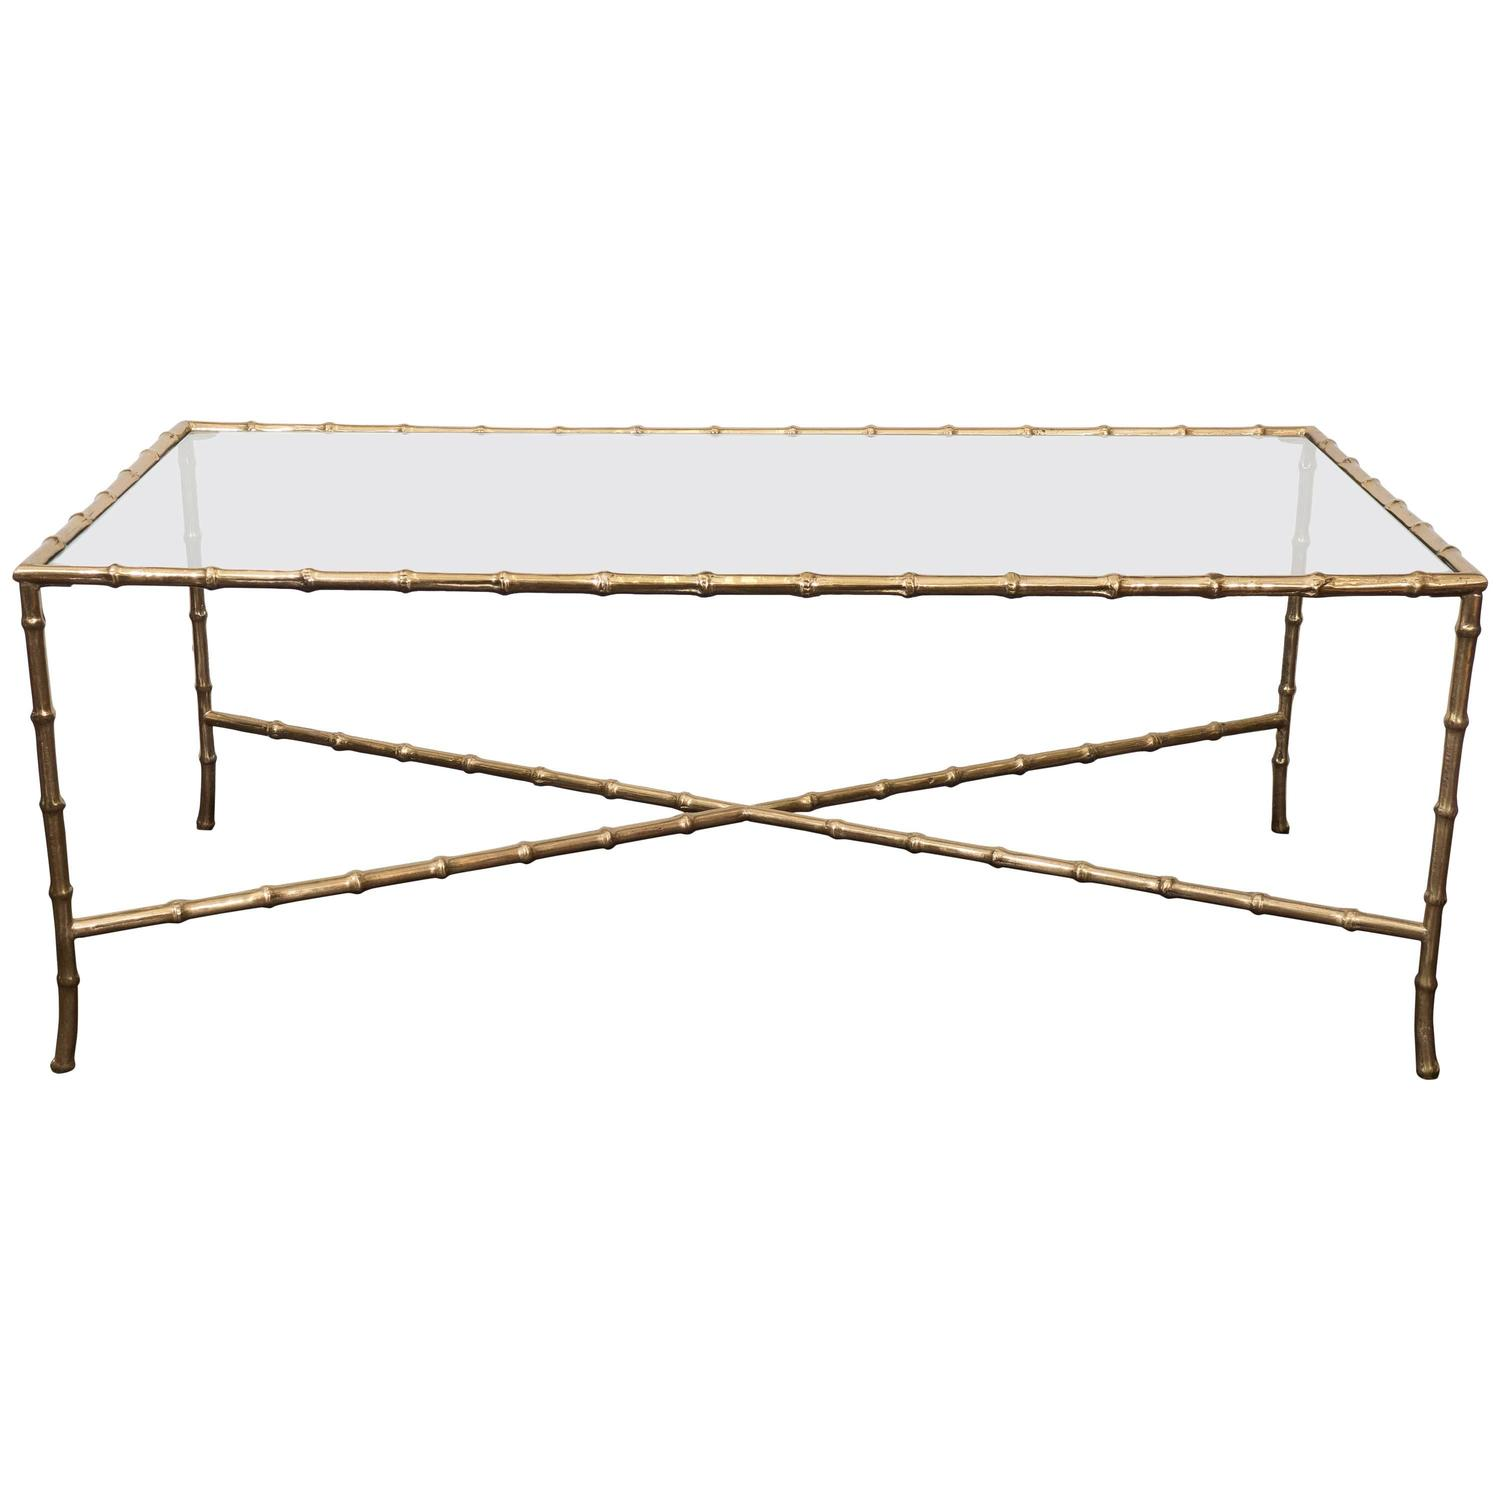 Mid Century Brass Faux Bamboo Coffee Table by Maison Bagues at 1stdibs